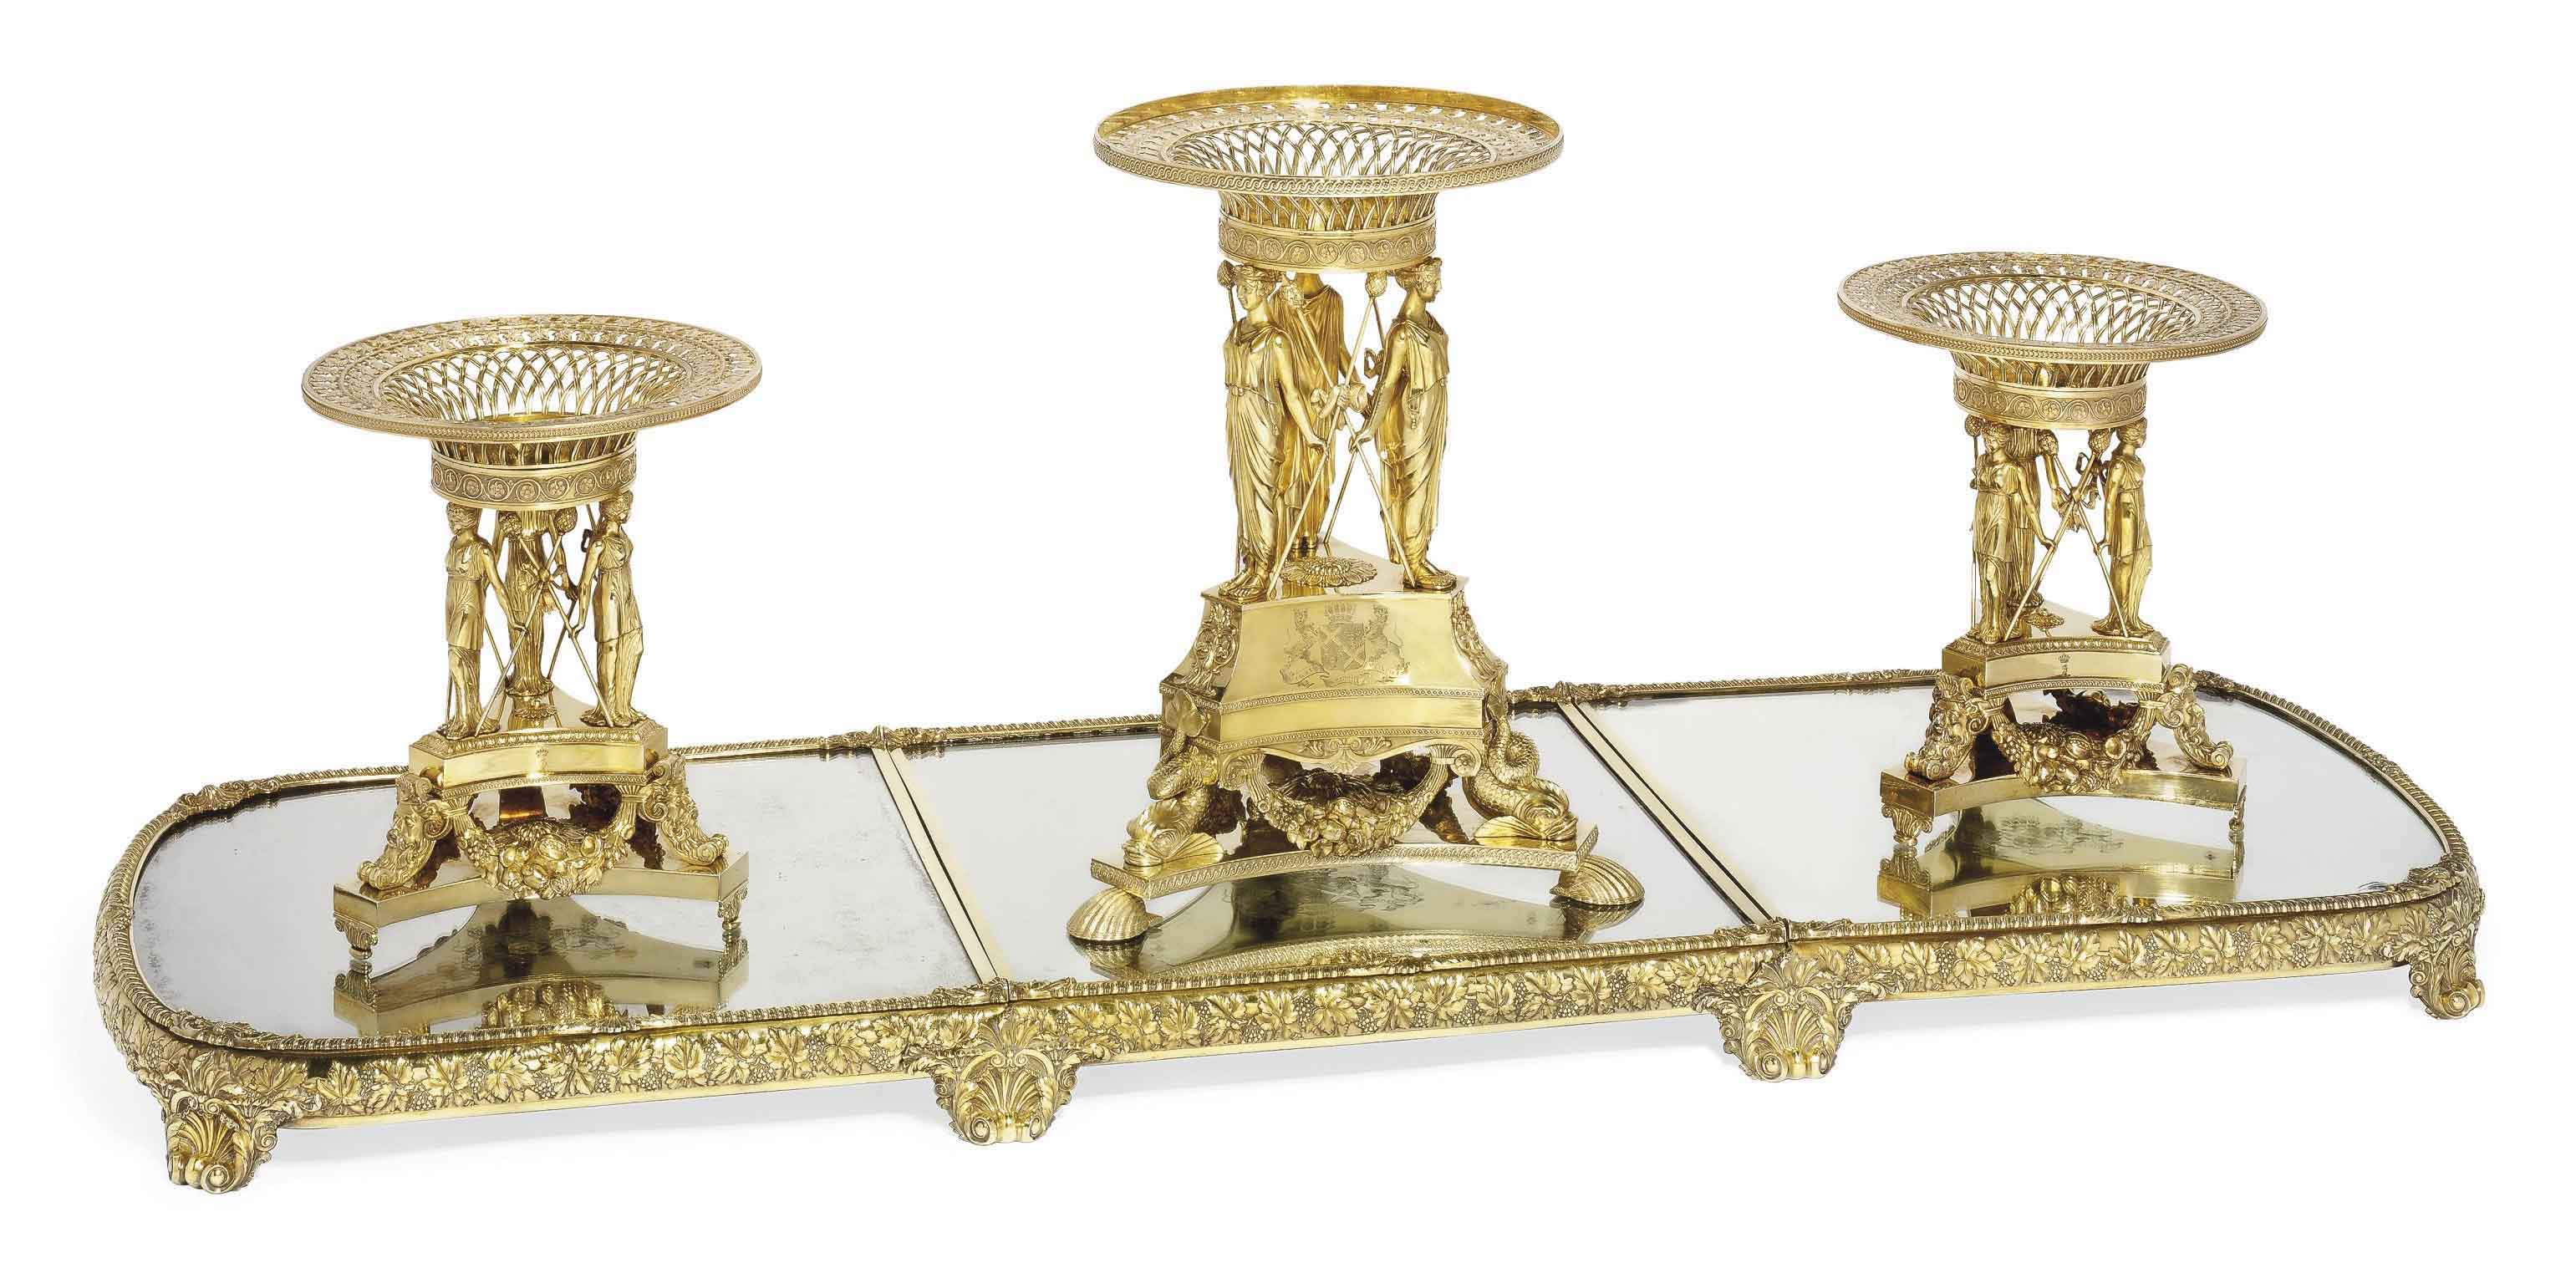 AN IMPORTANT GEORGE III SILVER-GILT SURTOUT-DE-TABLE